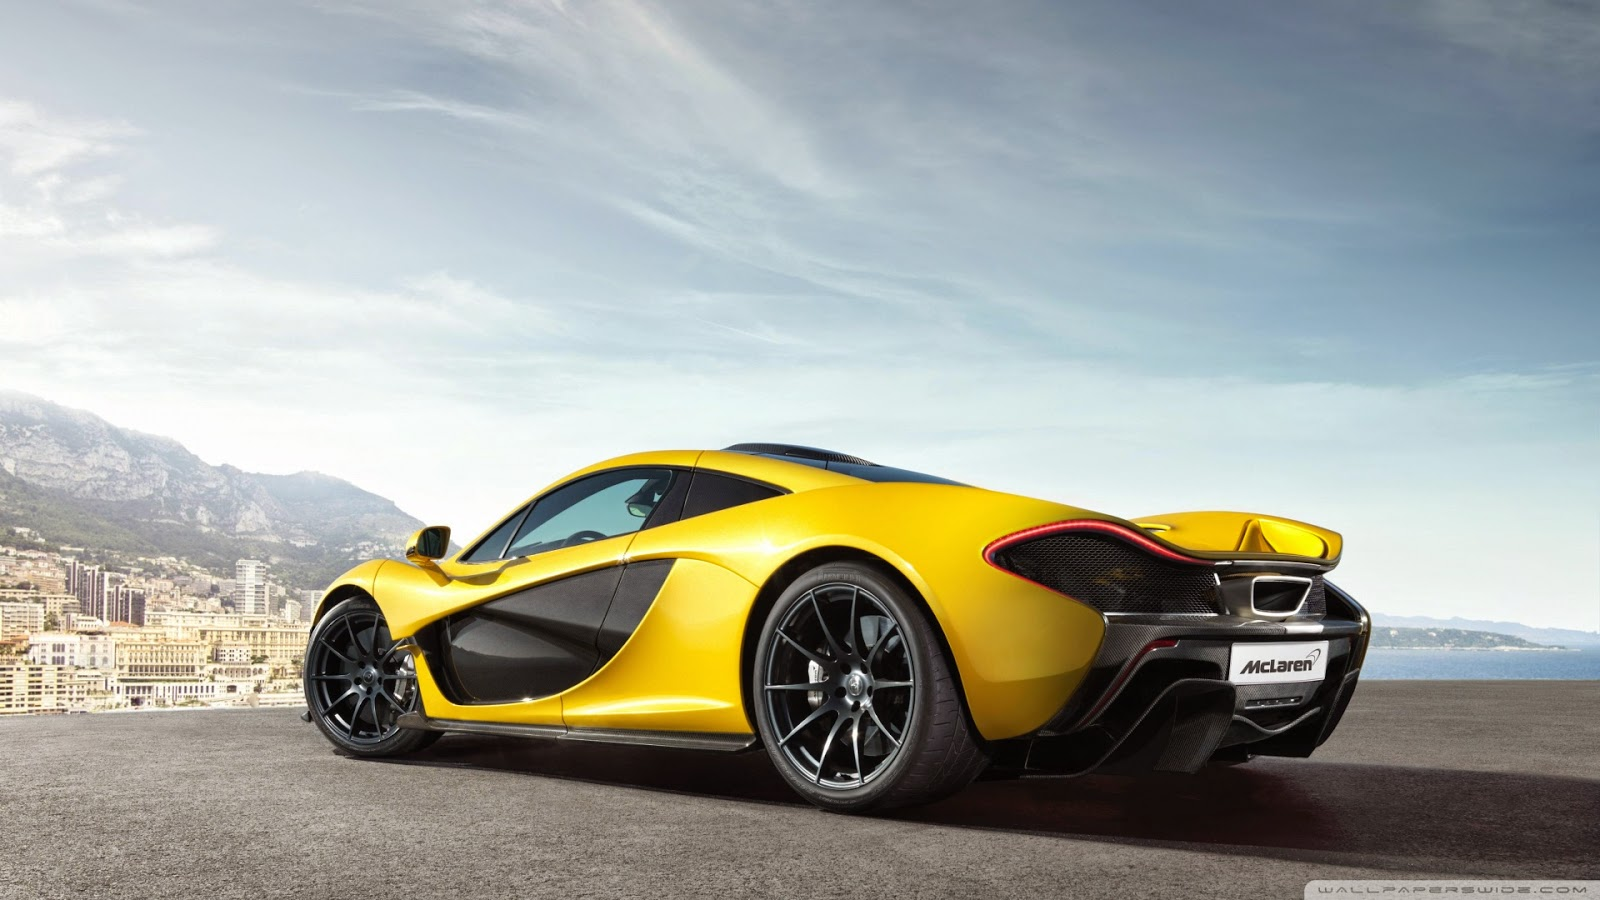 Mclaren Car, Mclaren Wallpaper, Hd Wallpaper Of Cars, Cars Wallpaper Hd, Hd